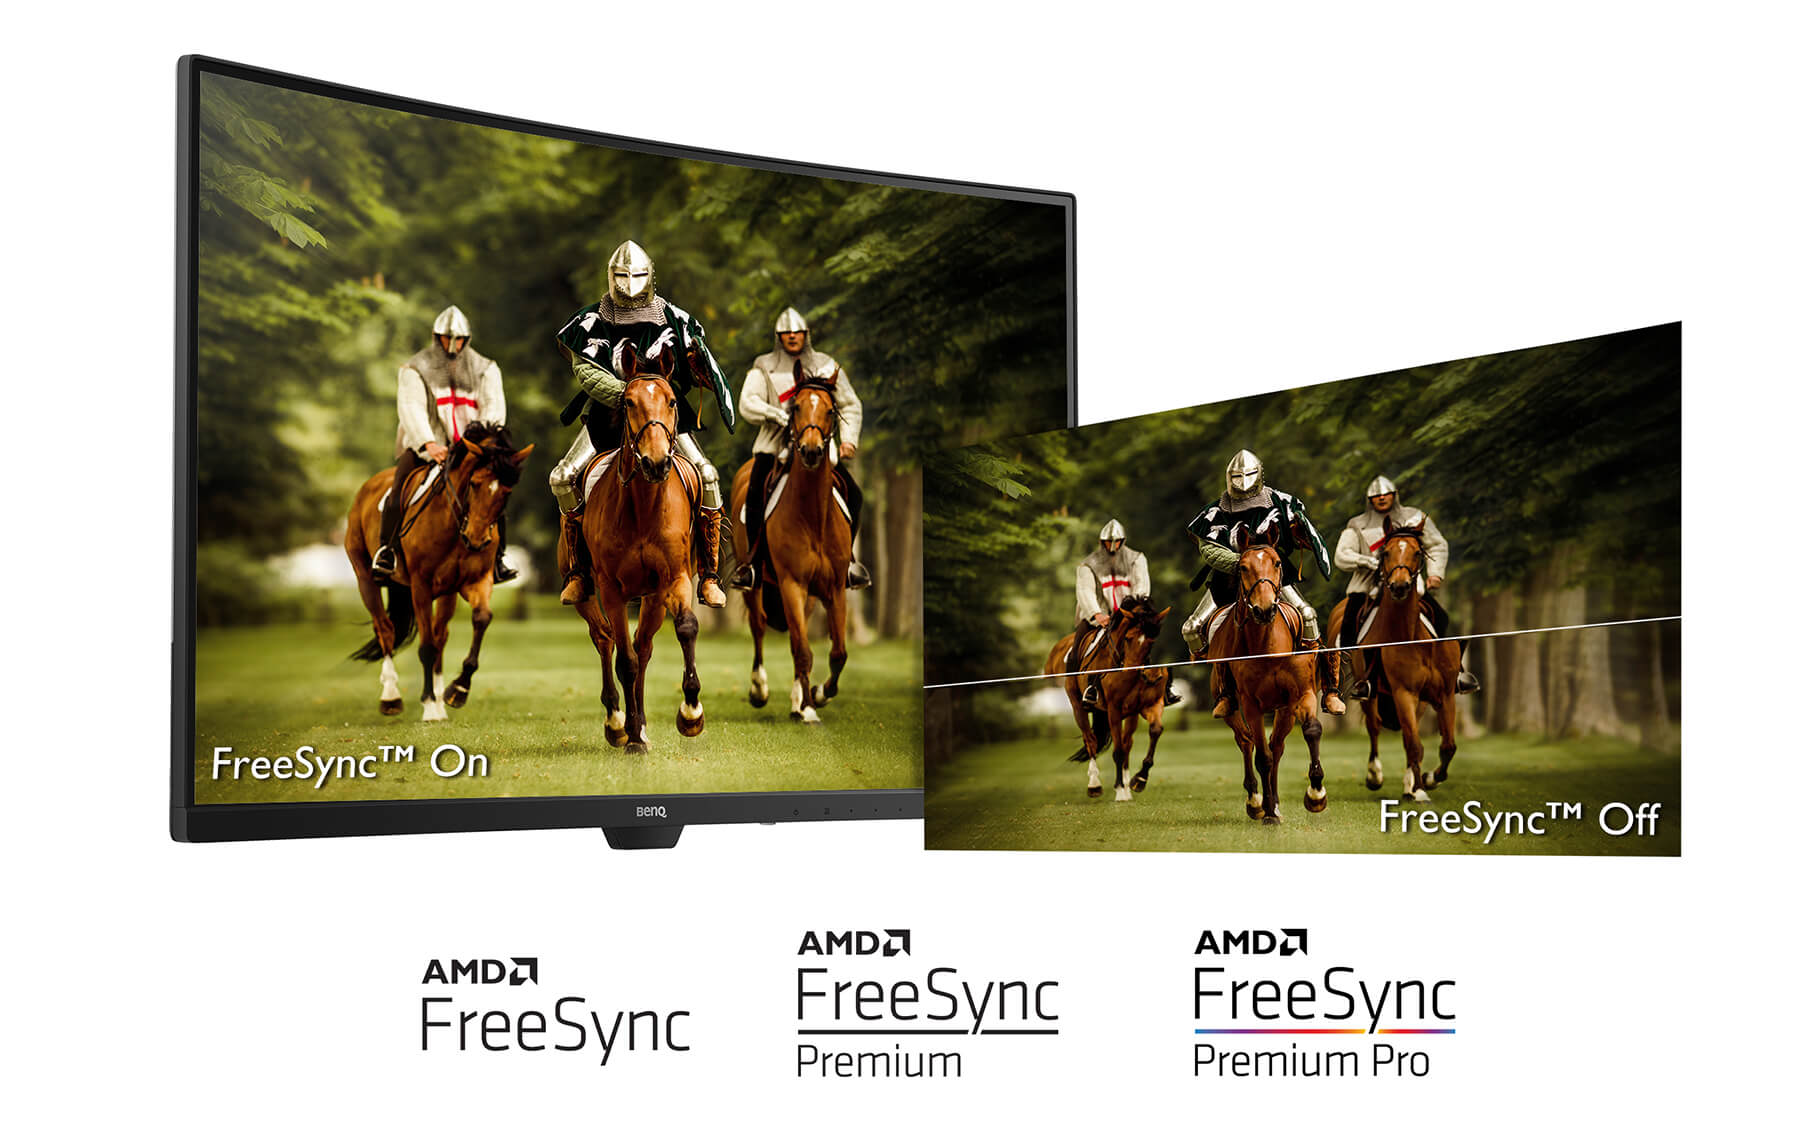 BenQ gaming monitors with FreeSync technology